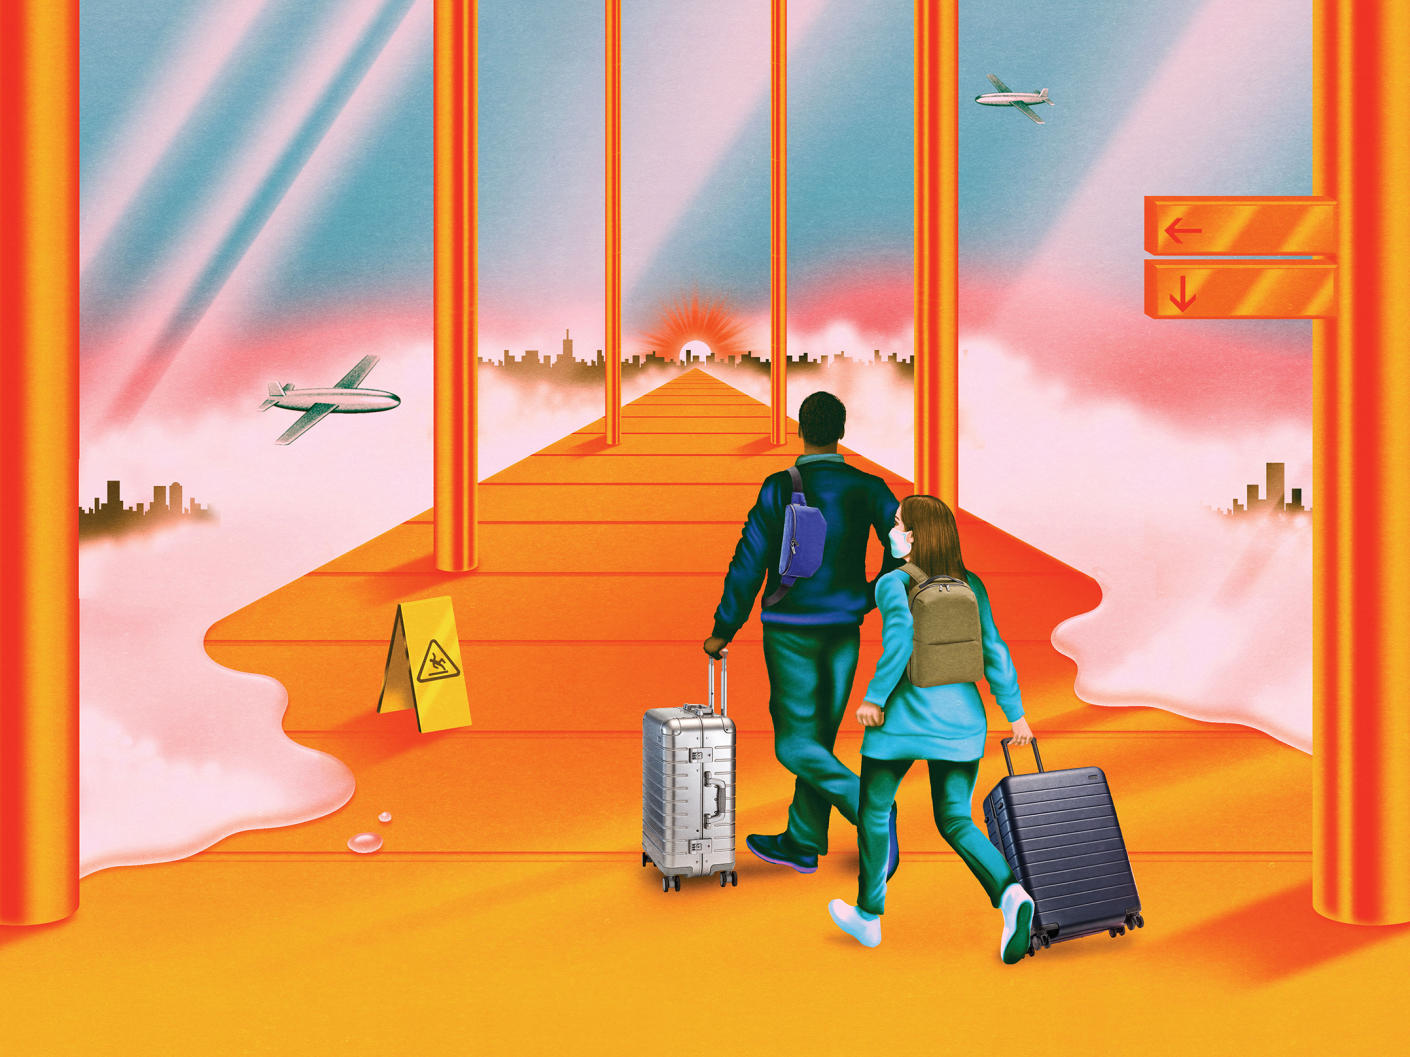 An illustration of people with luggage walking down an airport corridor with planes and cityscape outside the windows.